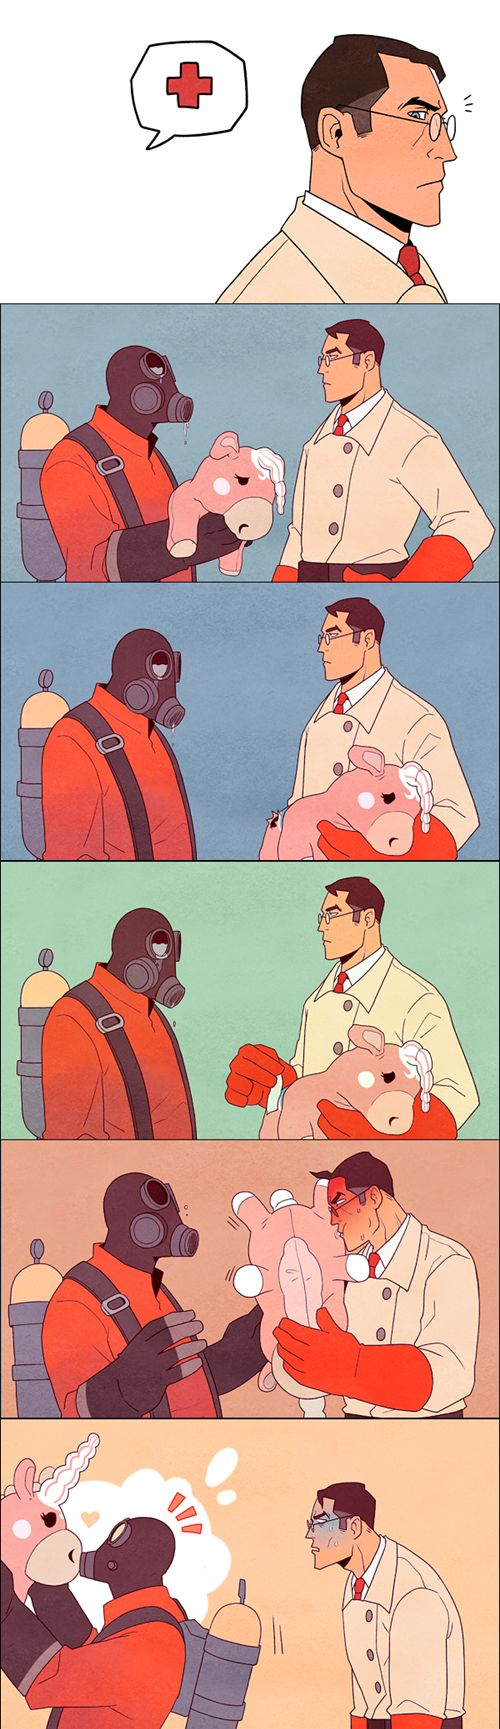 Medic has to do everything - Imgur